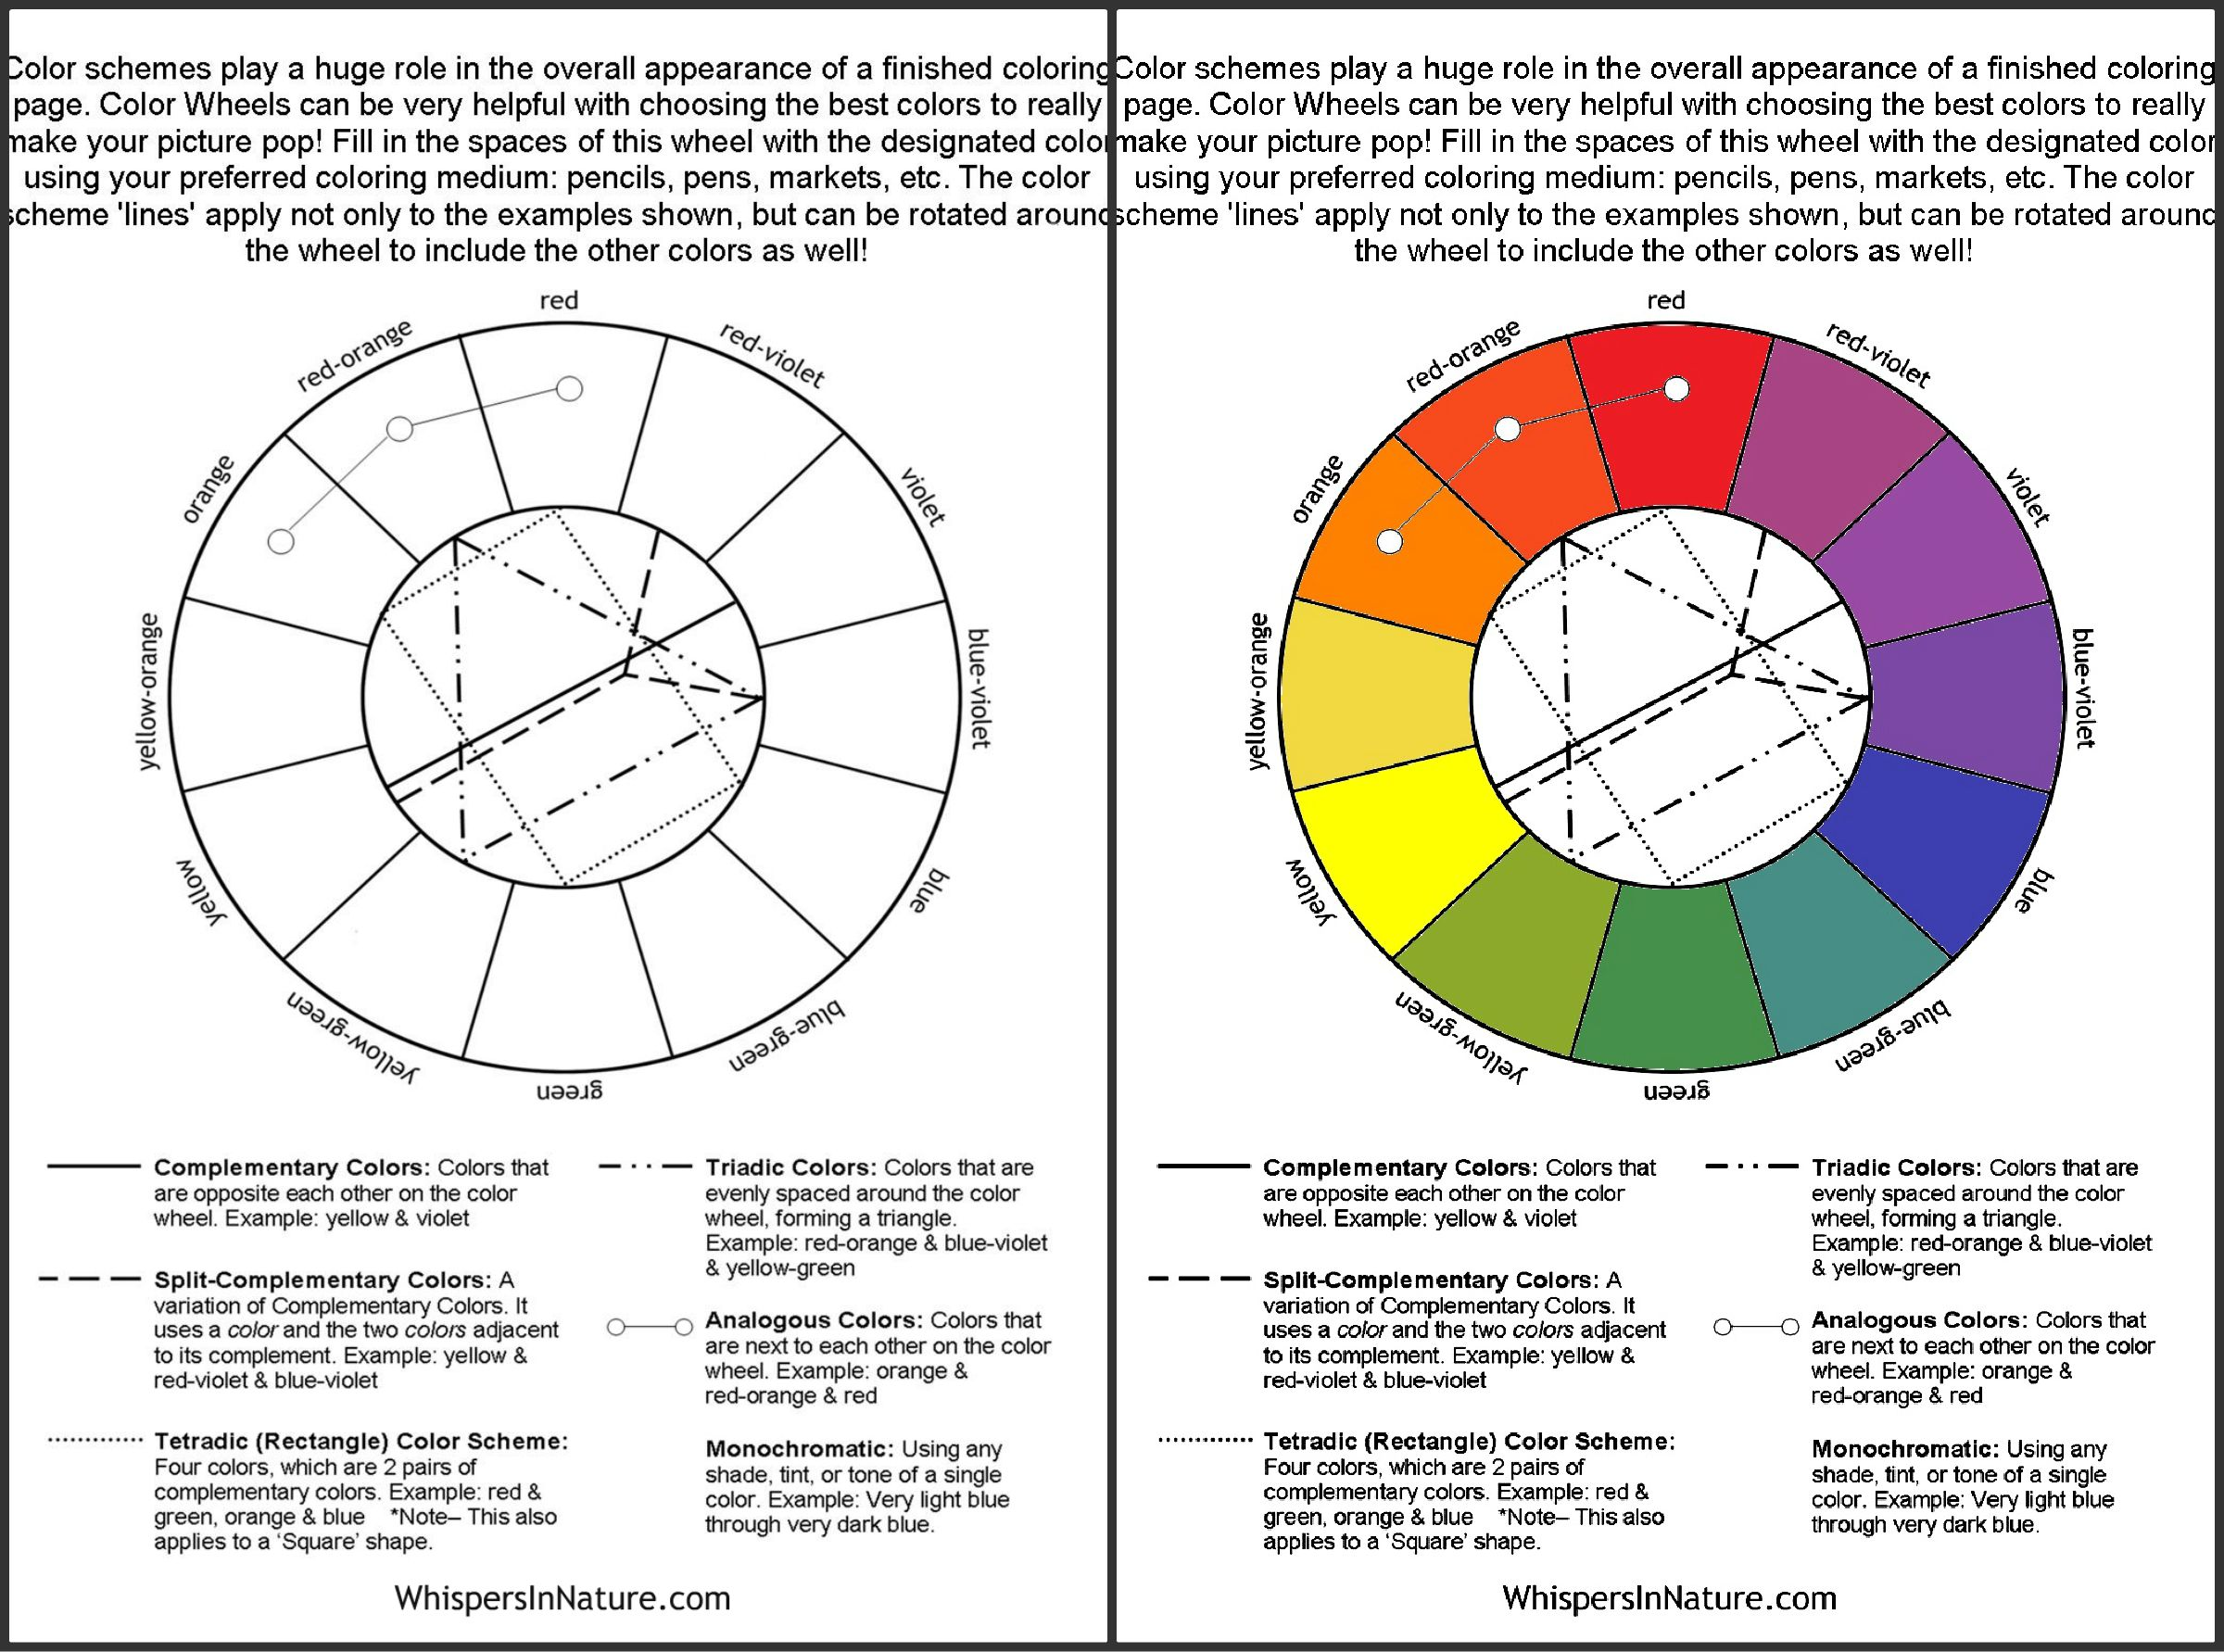 Color wheel complementary colors - Color Wheel Diy Free Adult Coloring Pages Color Wheel Print And Fill In With